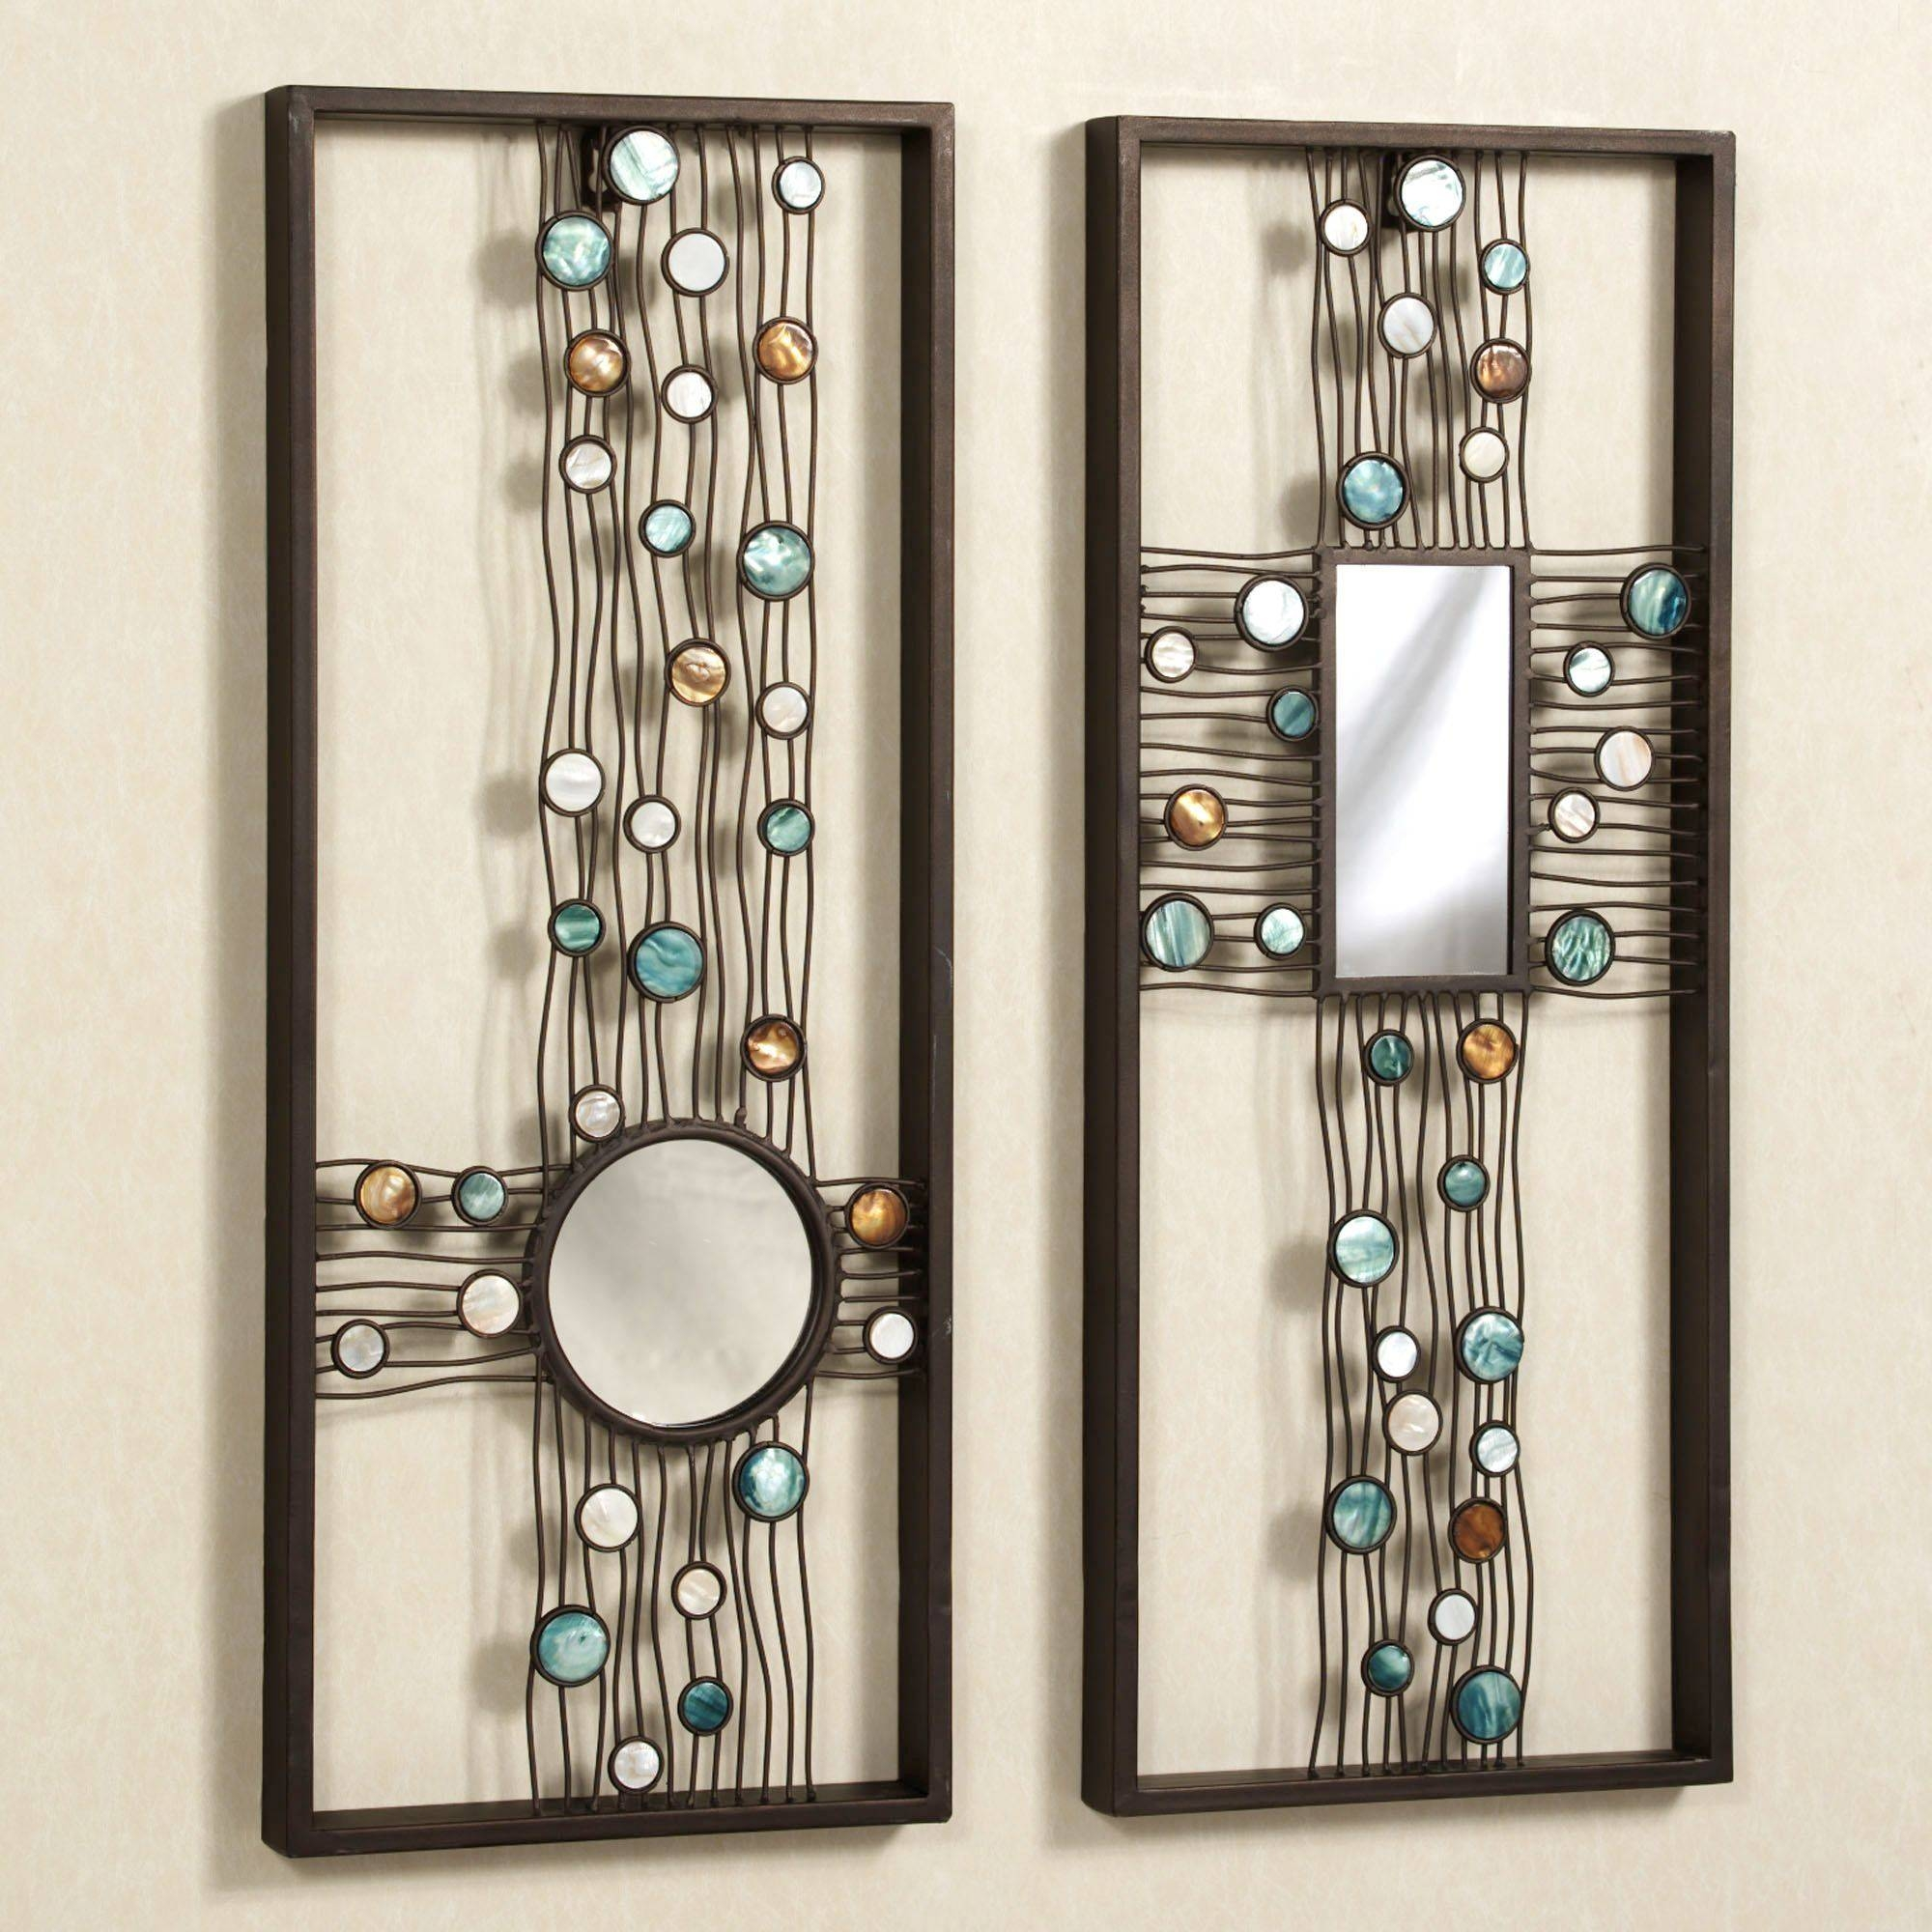 Capizia Metal Wall Panel Art Set Intended For Most Recently Released Metal Wall Art With Mirrors (View 17 of 20)